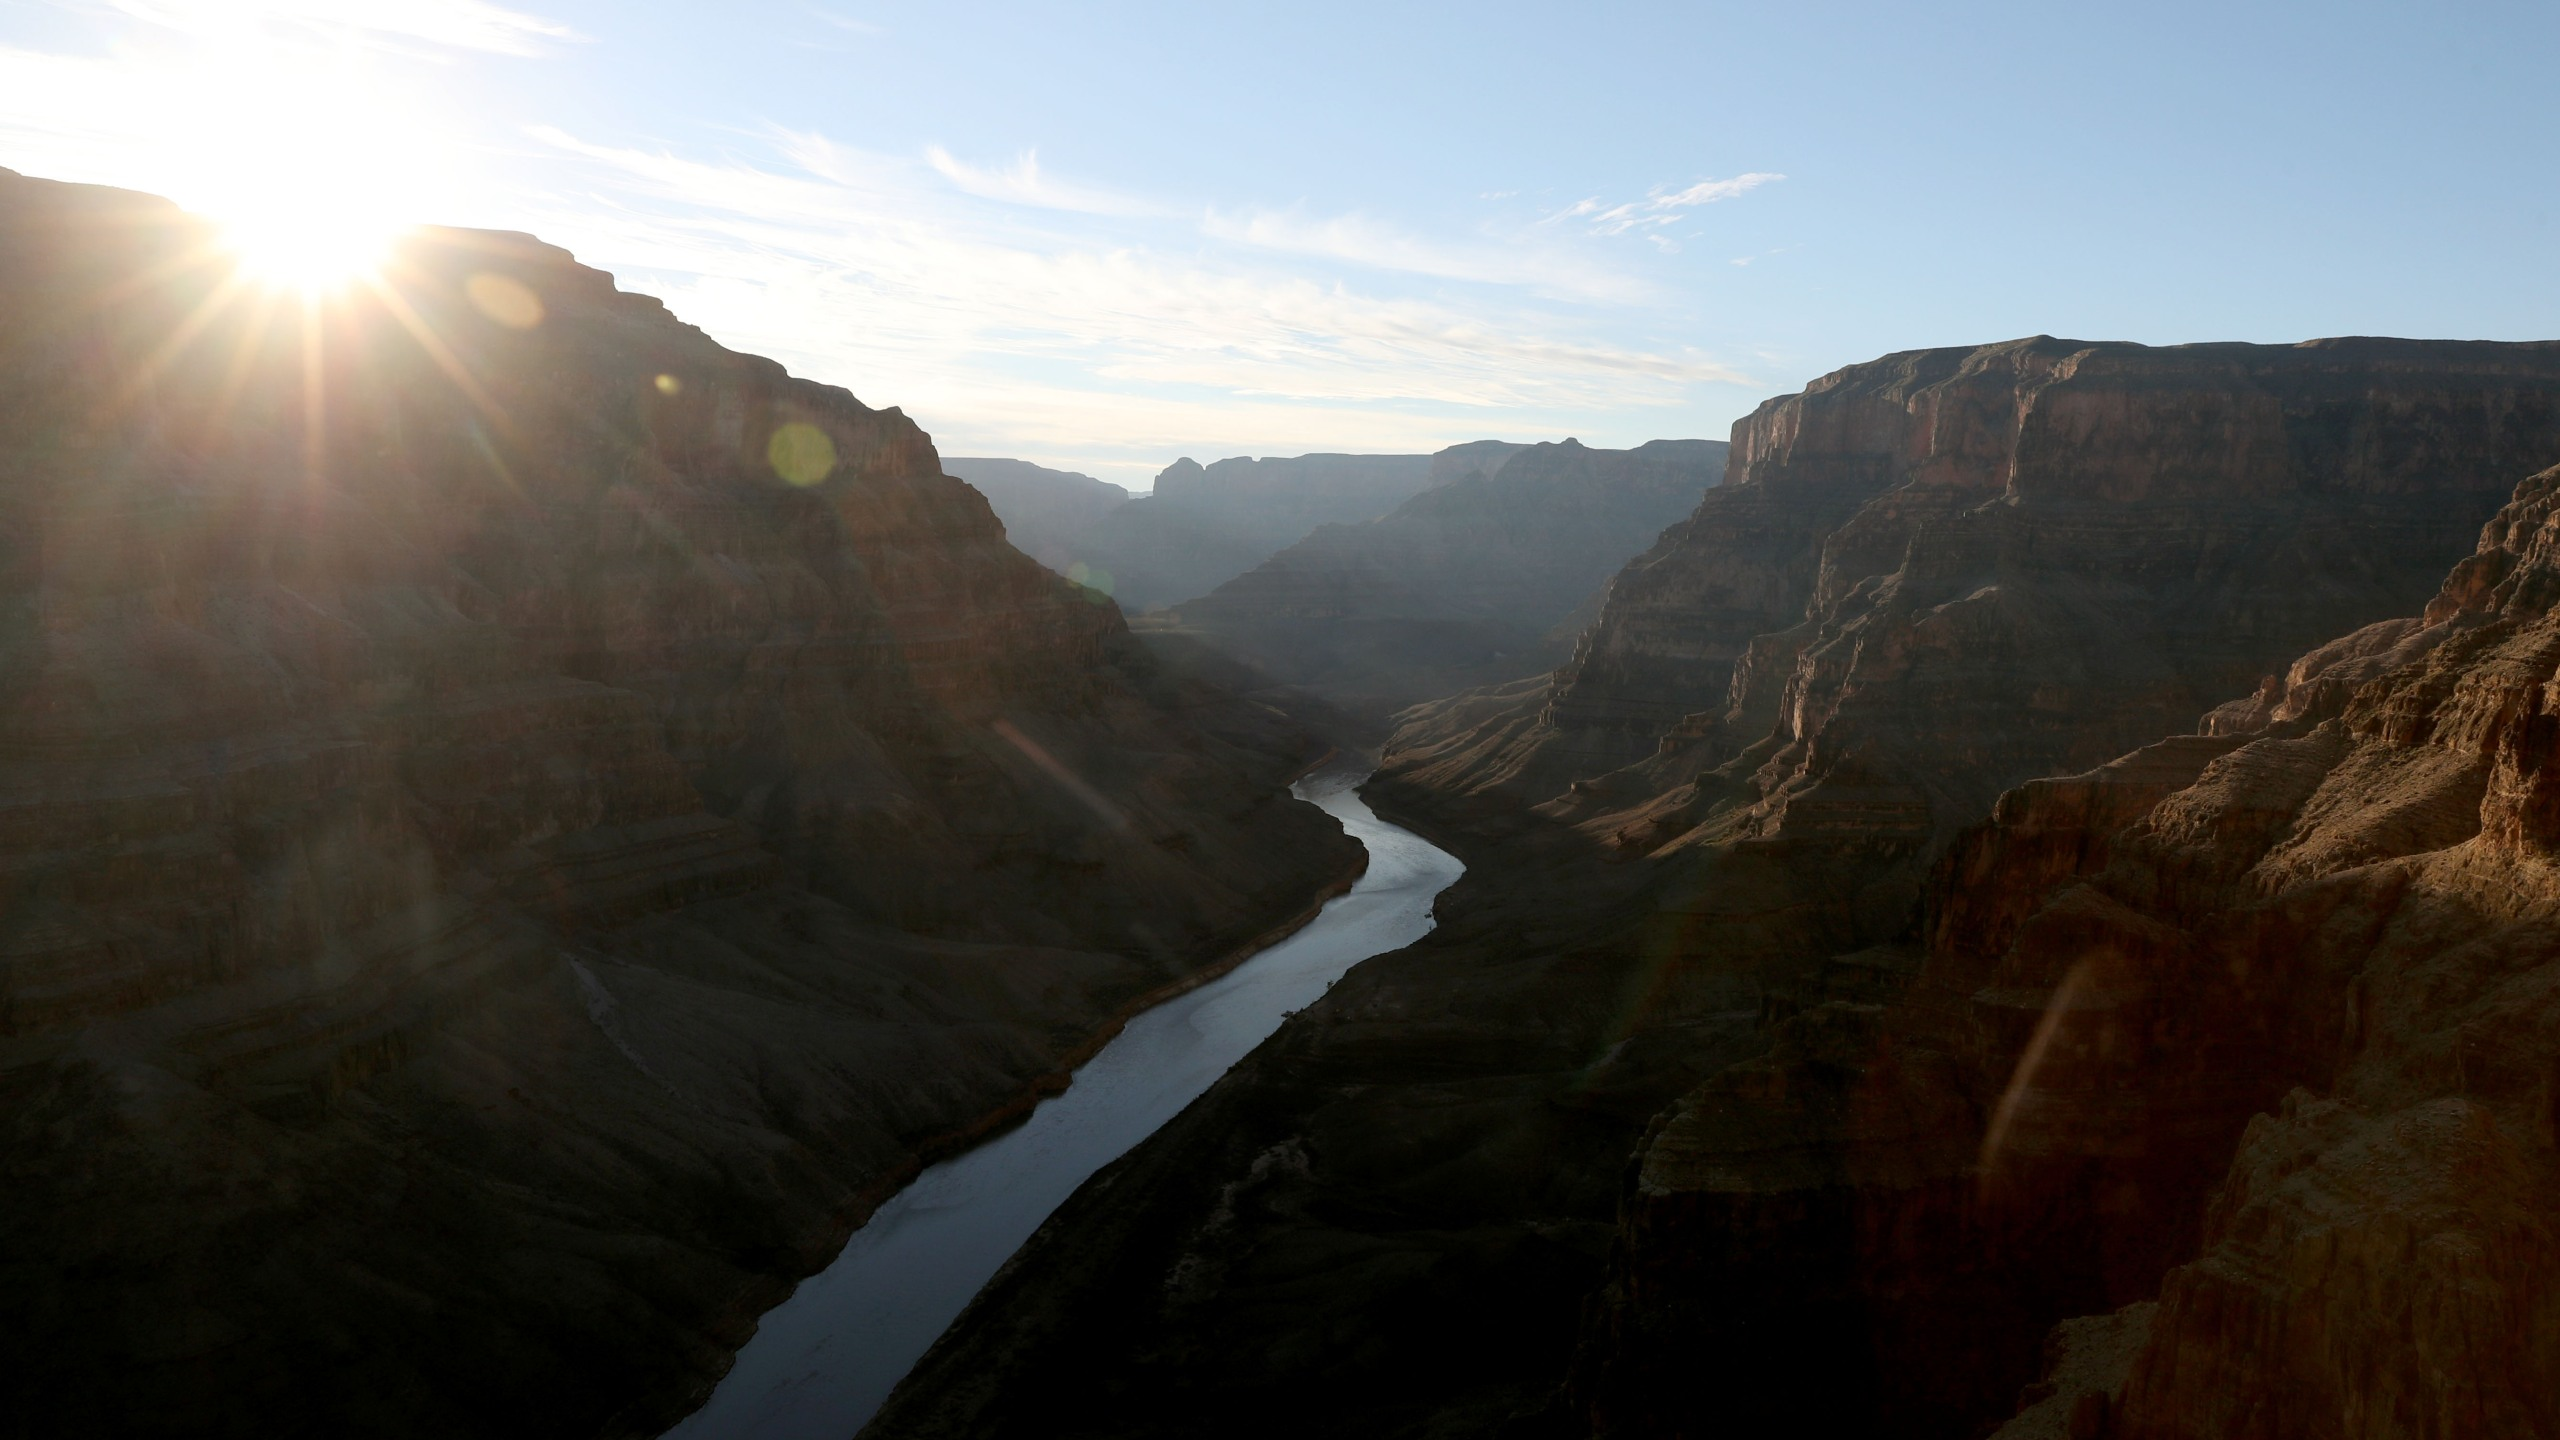 The Colorado River winds its way along the West Rim of the Grand Canyon in the Hualapai Indian Reservation on January 10, 2019 near Peach Springs, Arizona. (Credit: Justin Sullivan/Getty Images)